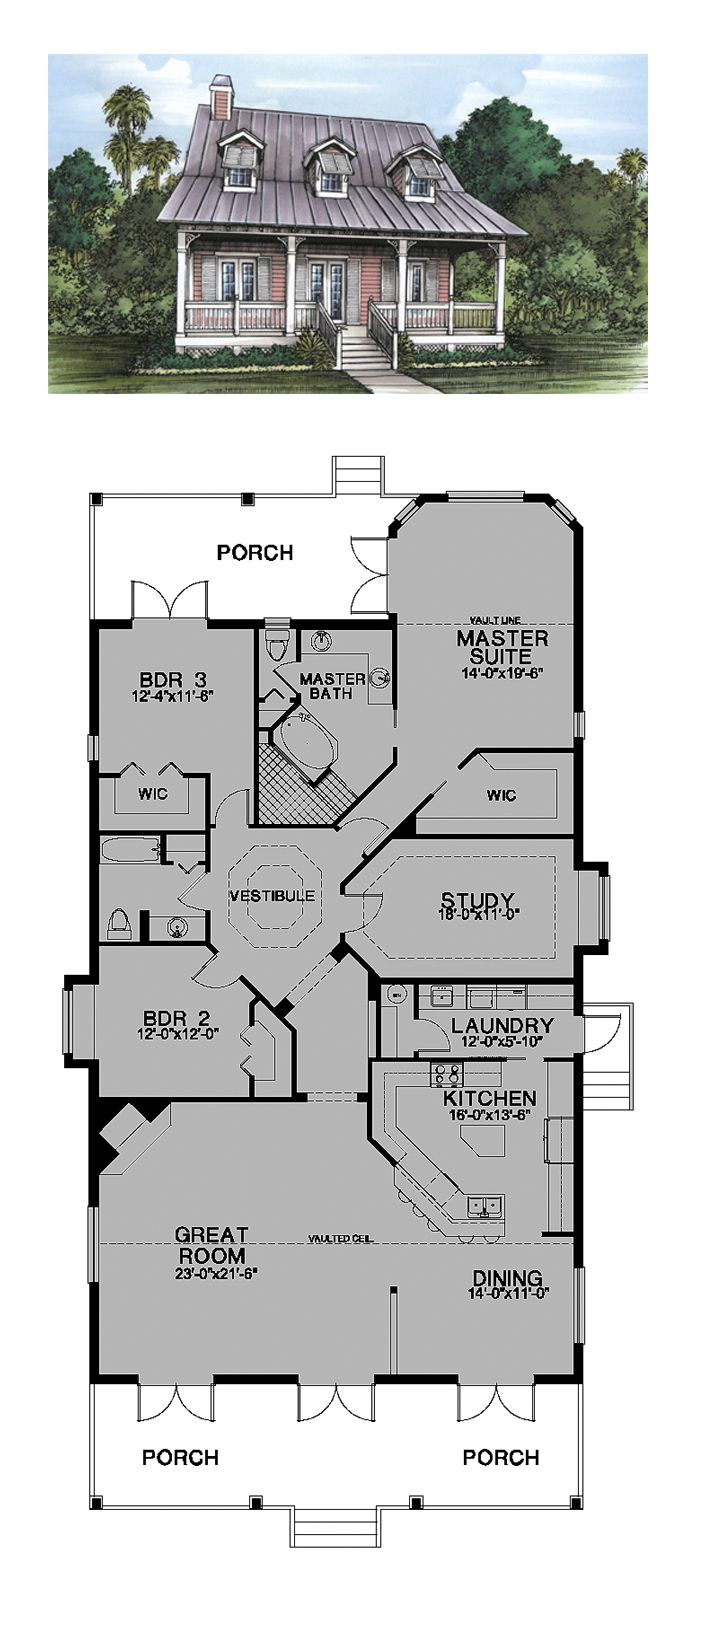 Plan For House interior plan houses house plans home plans plans residential plans Florida Cracker Style Cool House Plan Id Chp 24543 Total Living Area